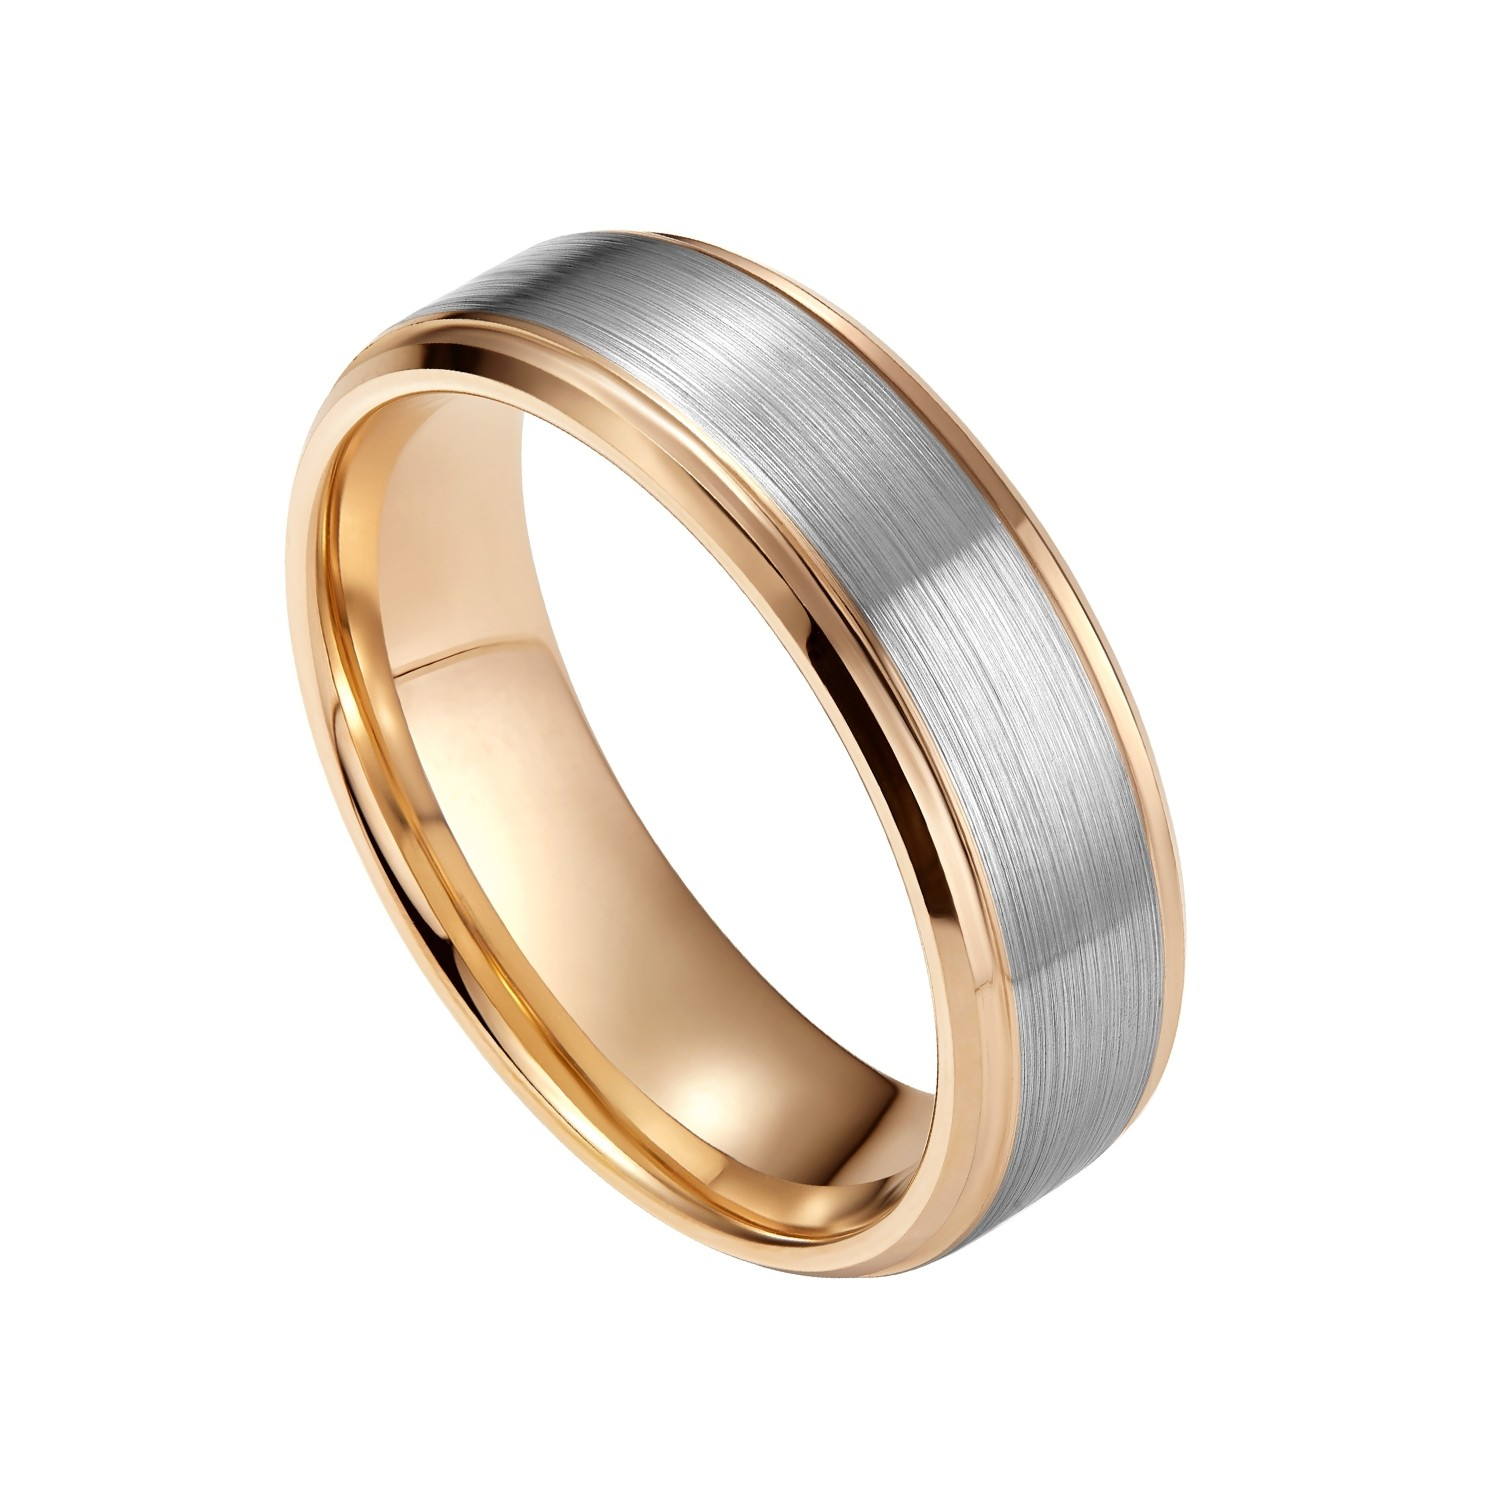 Womens Mens Wedding Bands Rose Gold And Silver Brushed With Stepped Edge 8mm 04